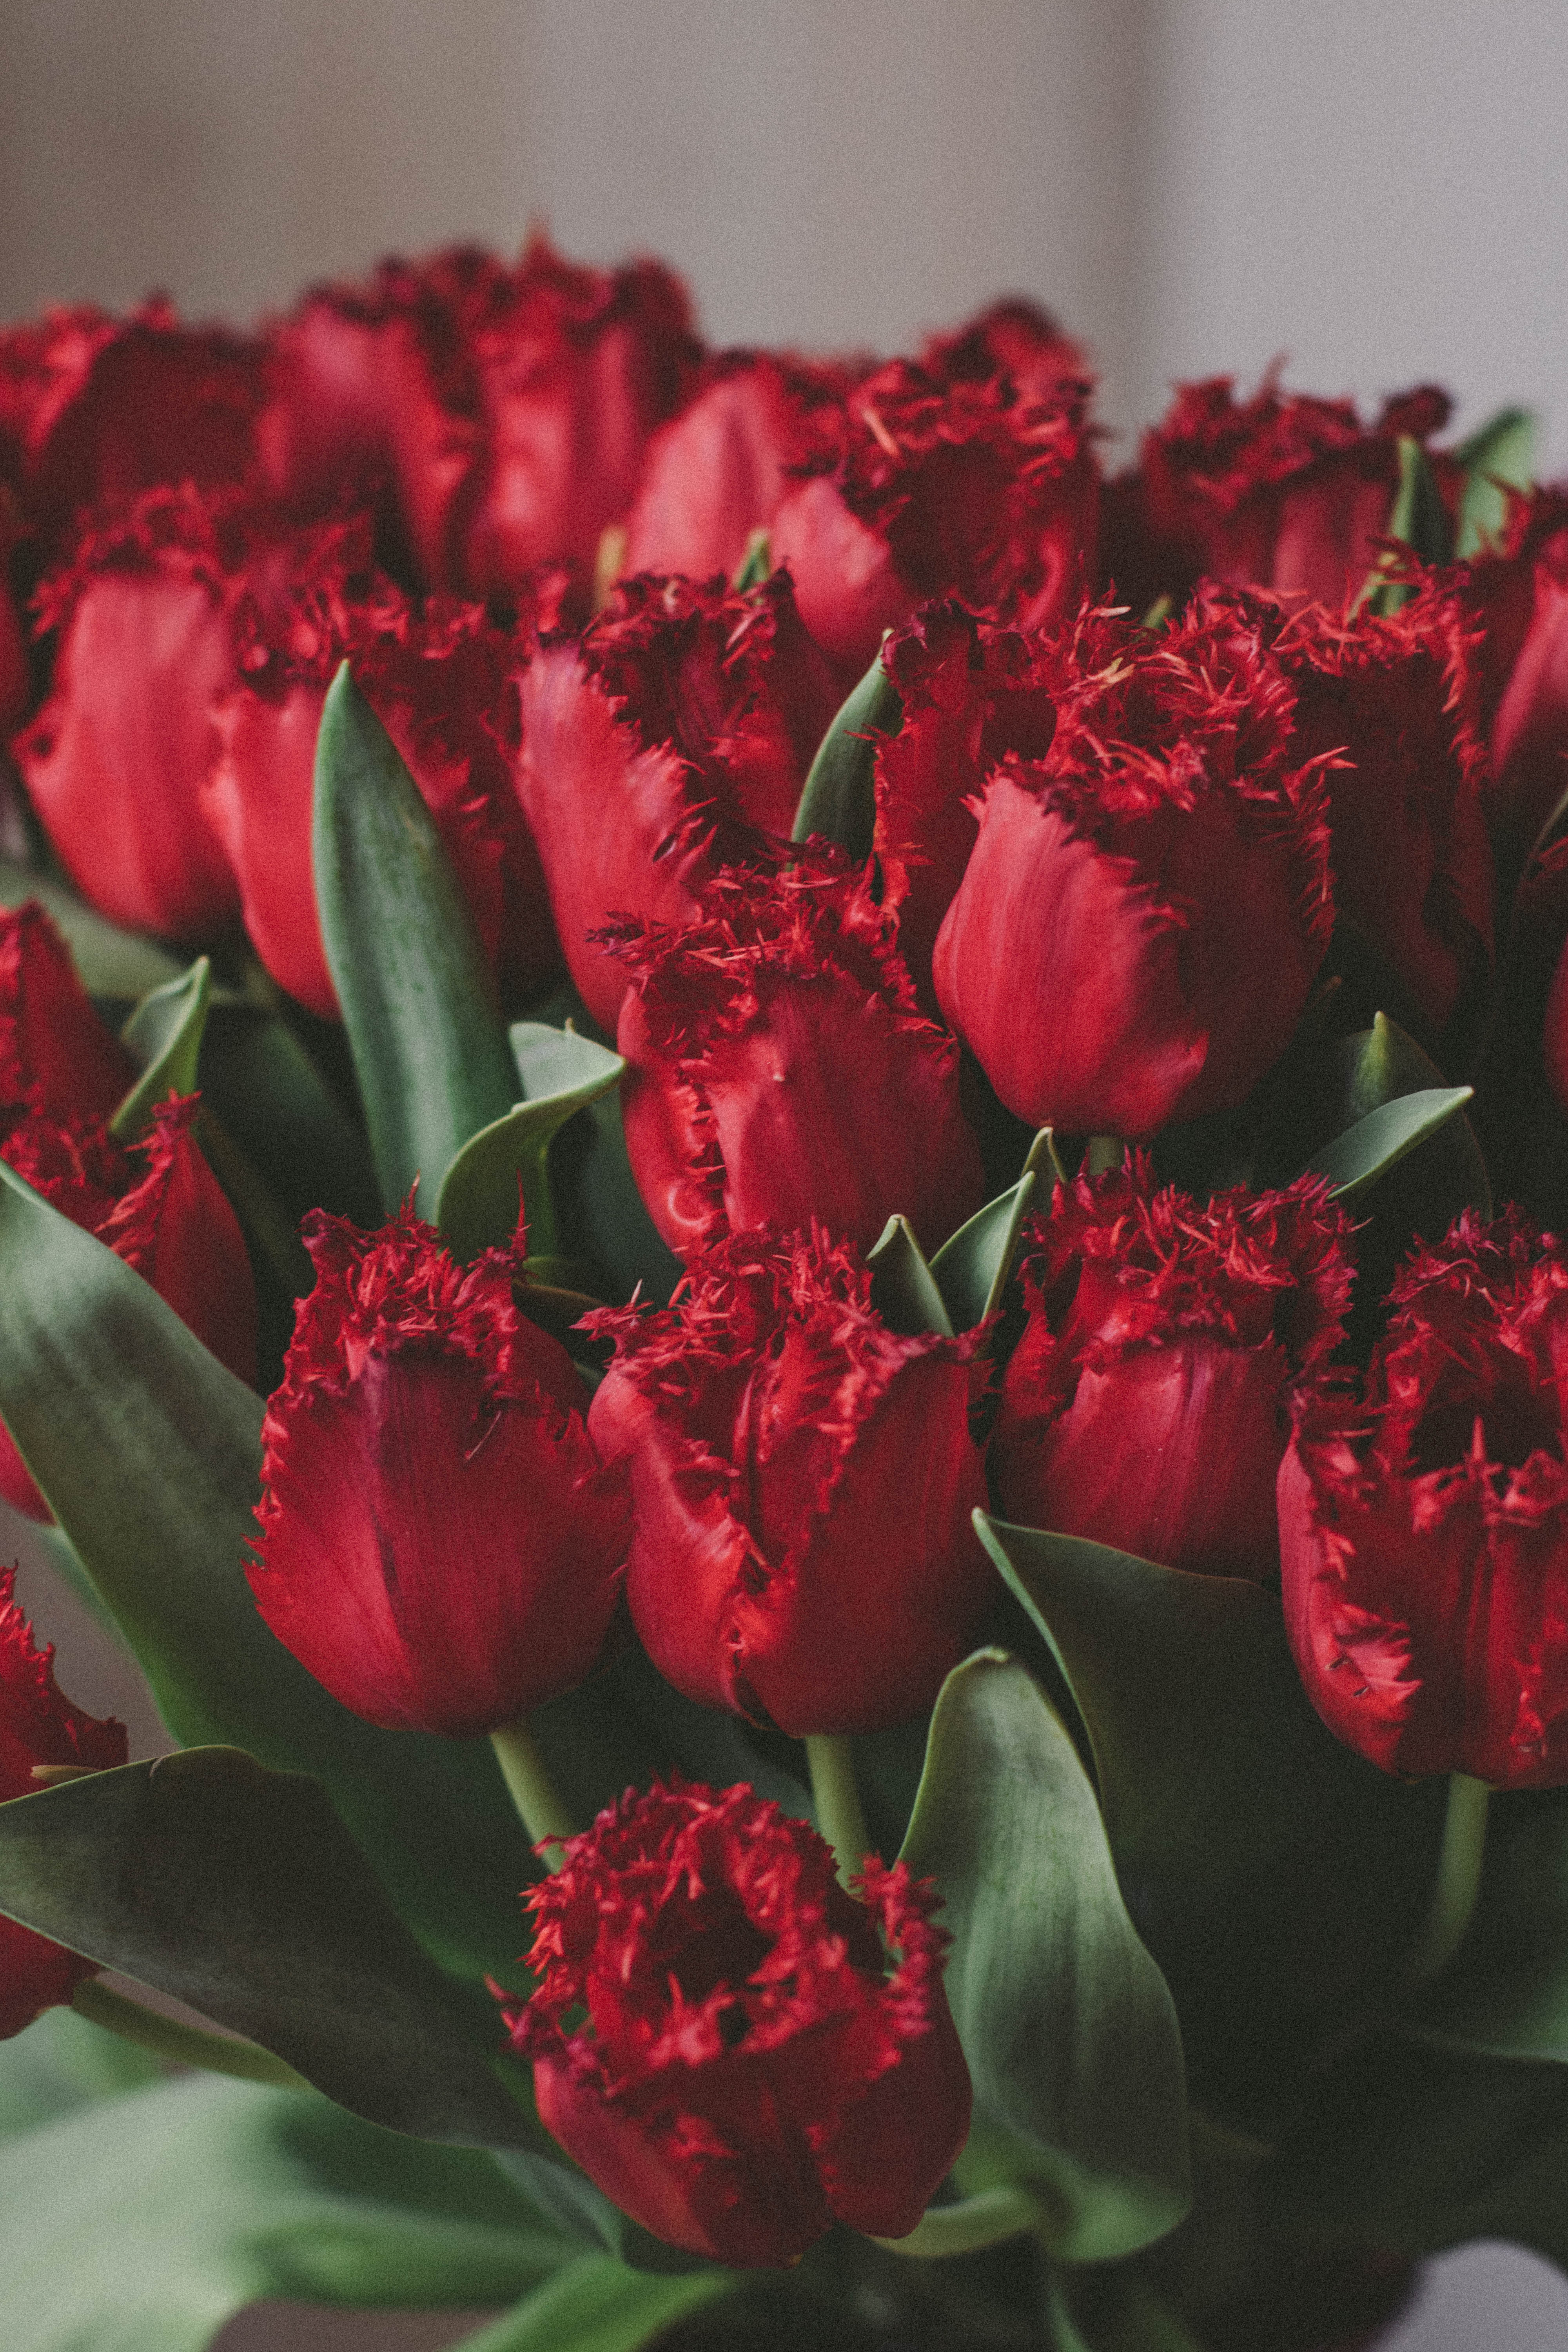 Artificial Red Tulips 183 Free Stock Photo